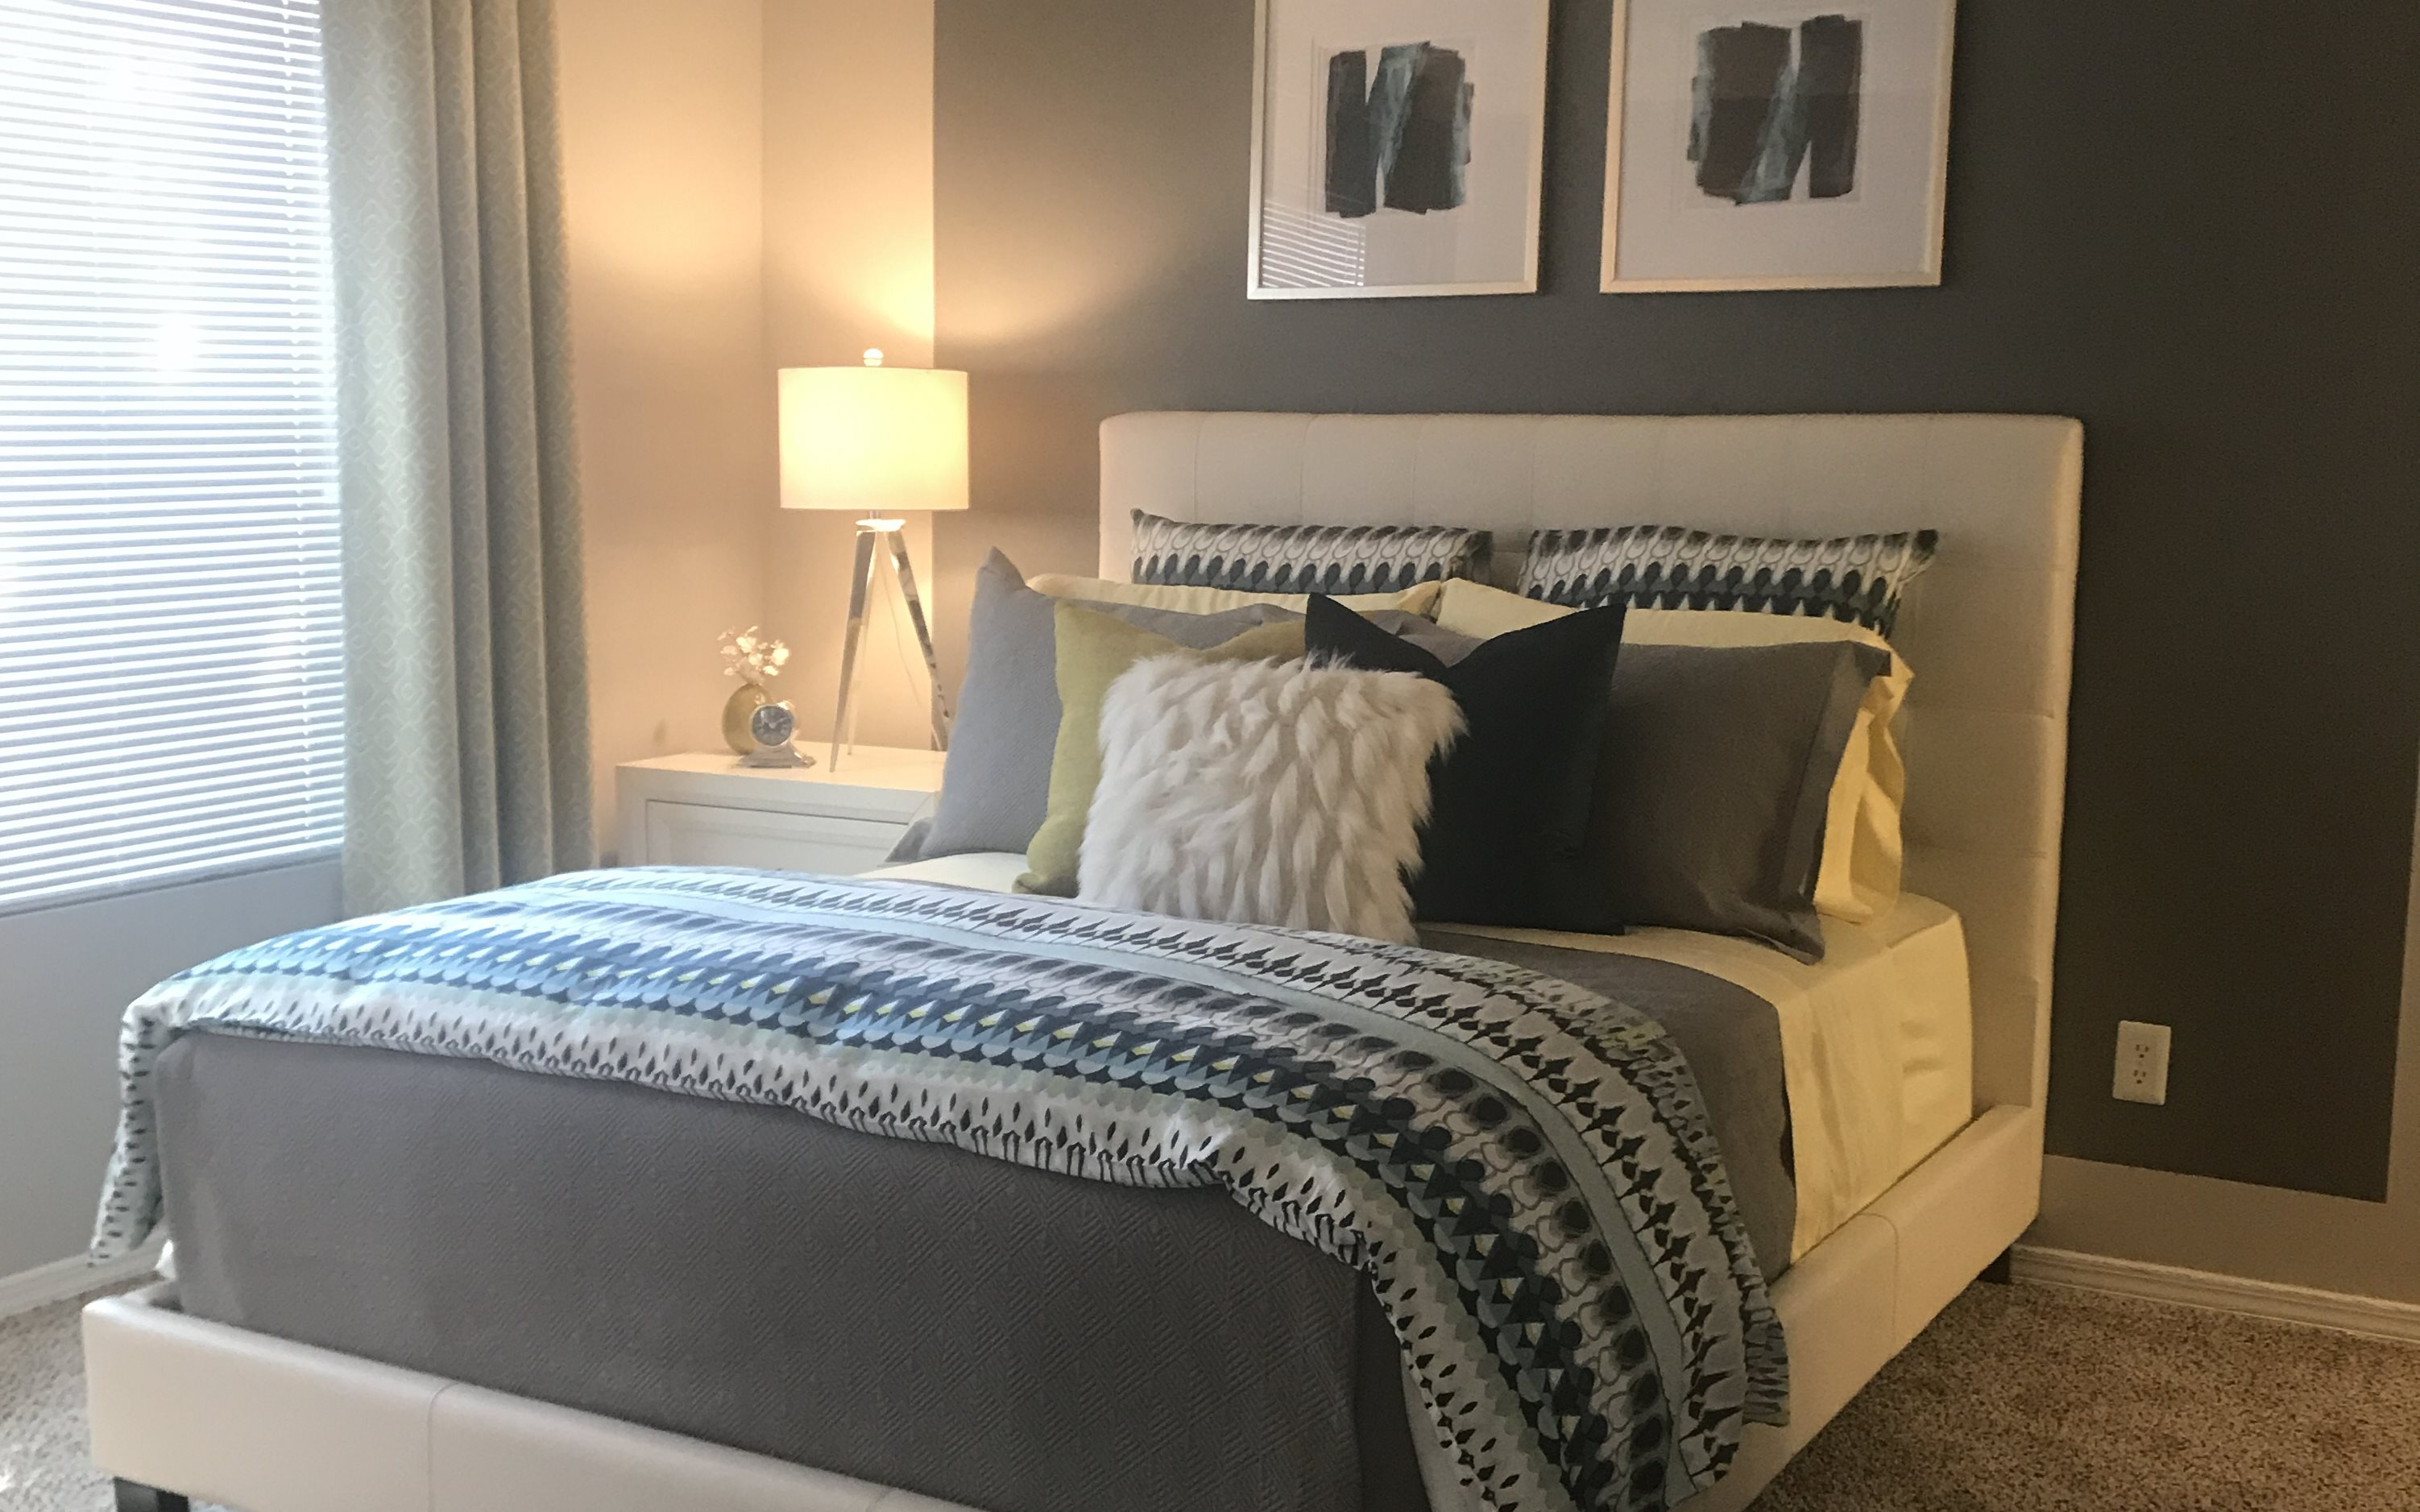 condos page rental bedroom toronto income for your apartments that rent go furniture zillow two tx rock apartment house by me bgc houses trulia downtown in rentals utilities or color near one az my atlanta all places location round phoenix serendra included